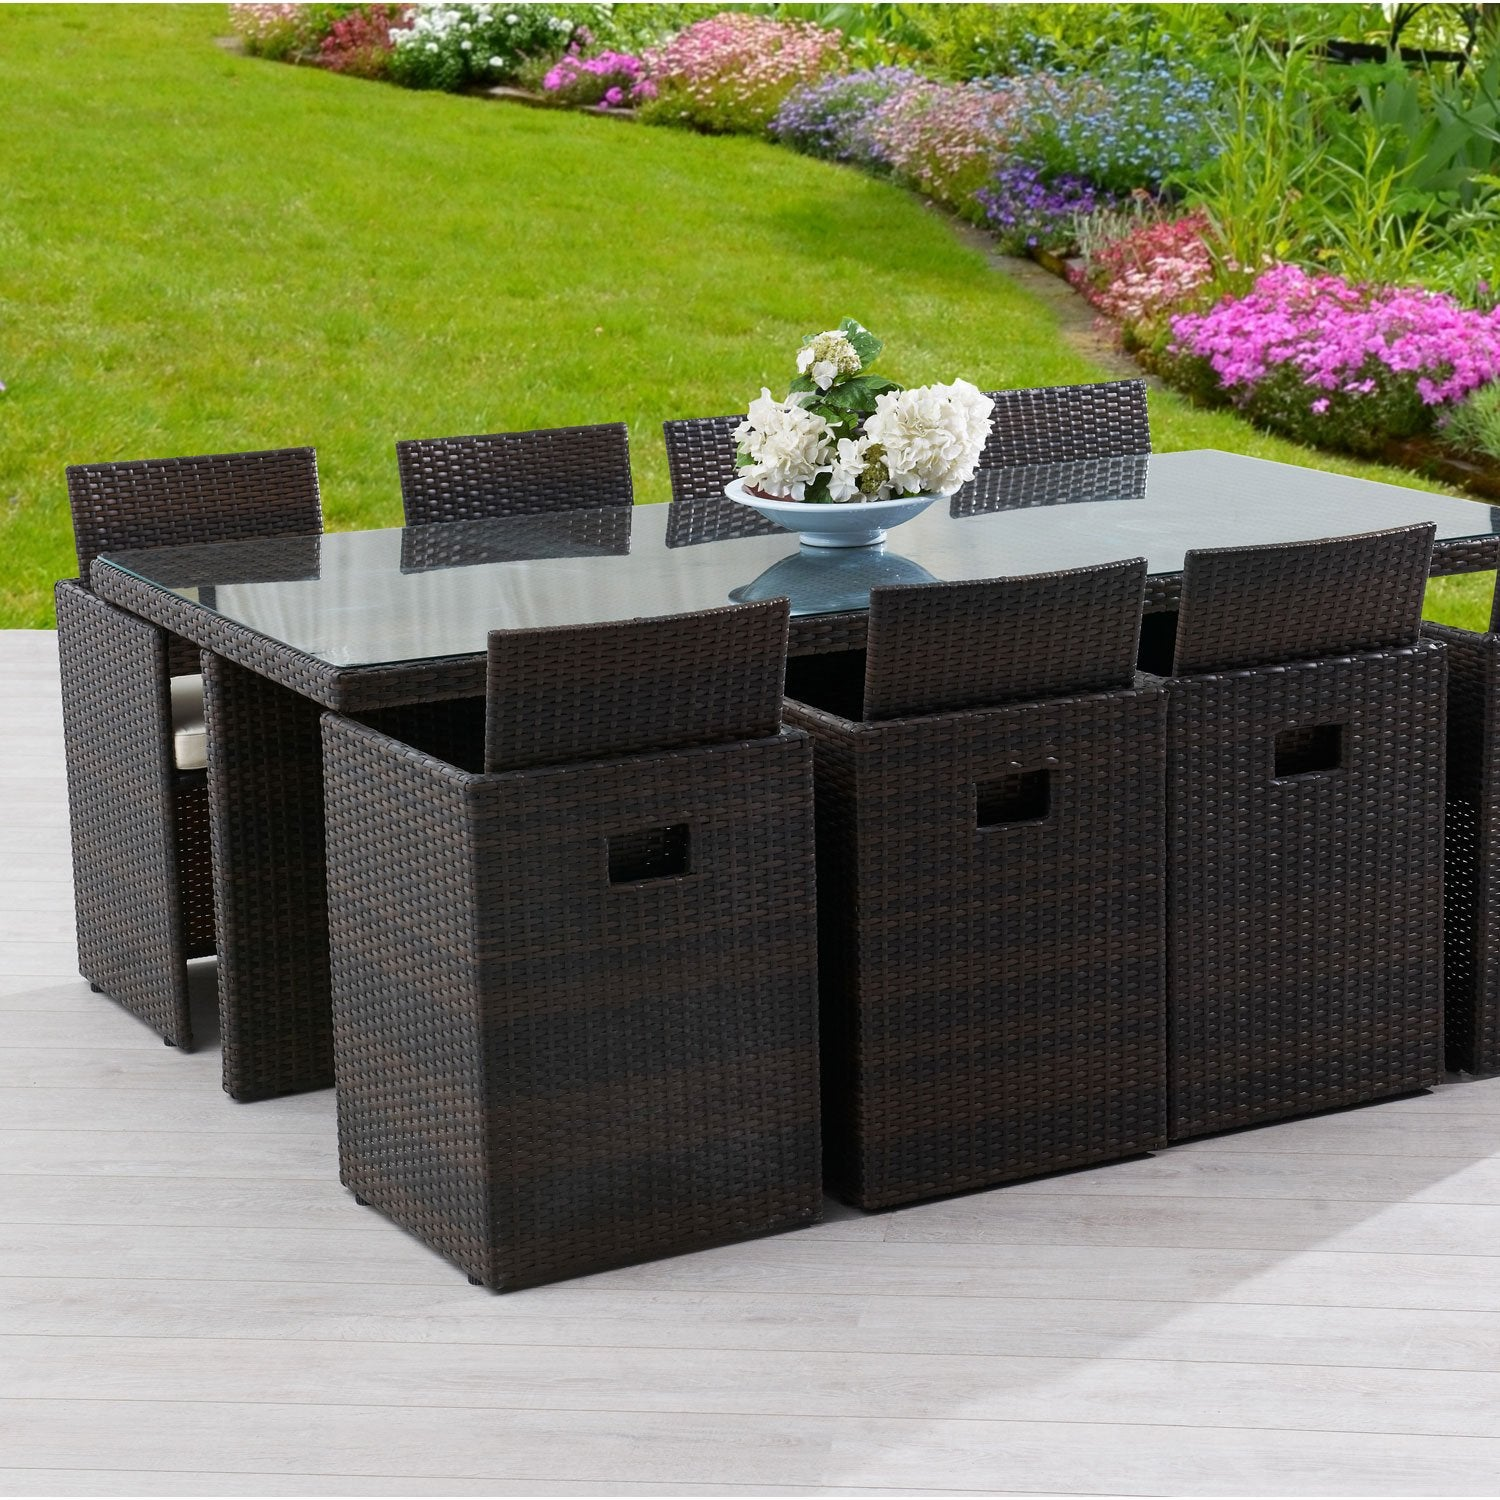 Salon de jardin encastrable r sine tress e marron 1 table for Leclerc exterieur table